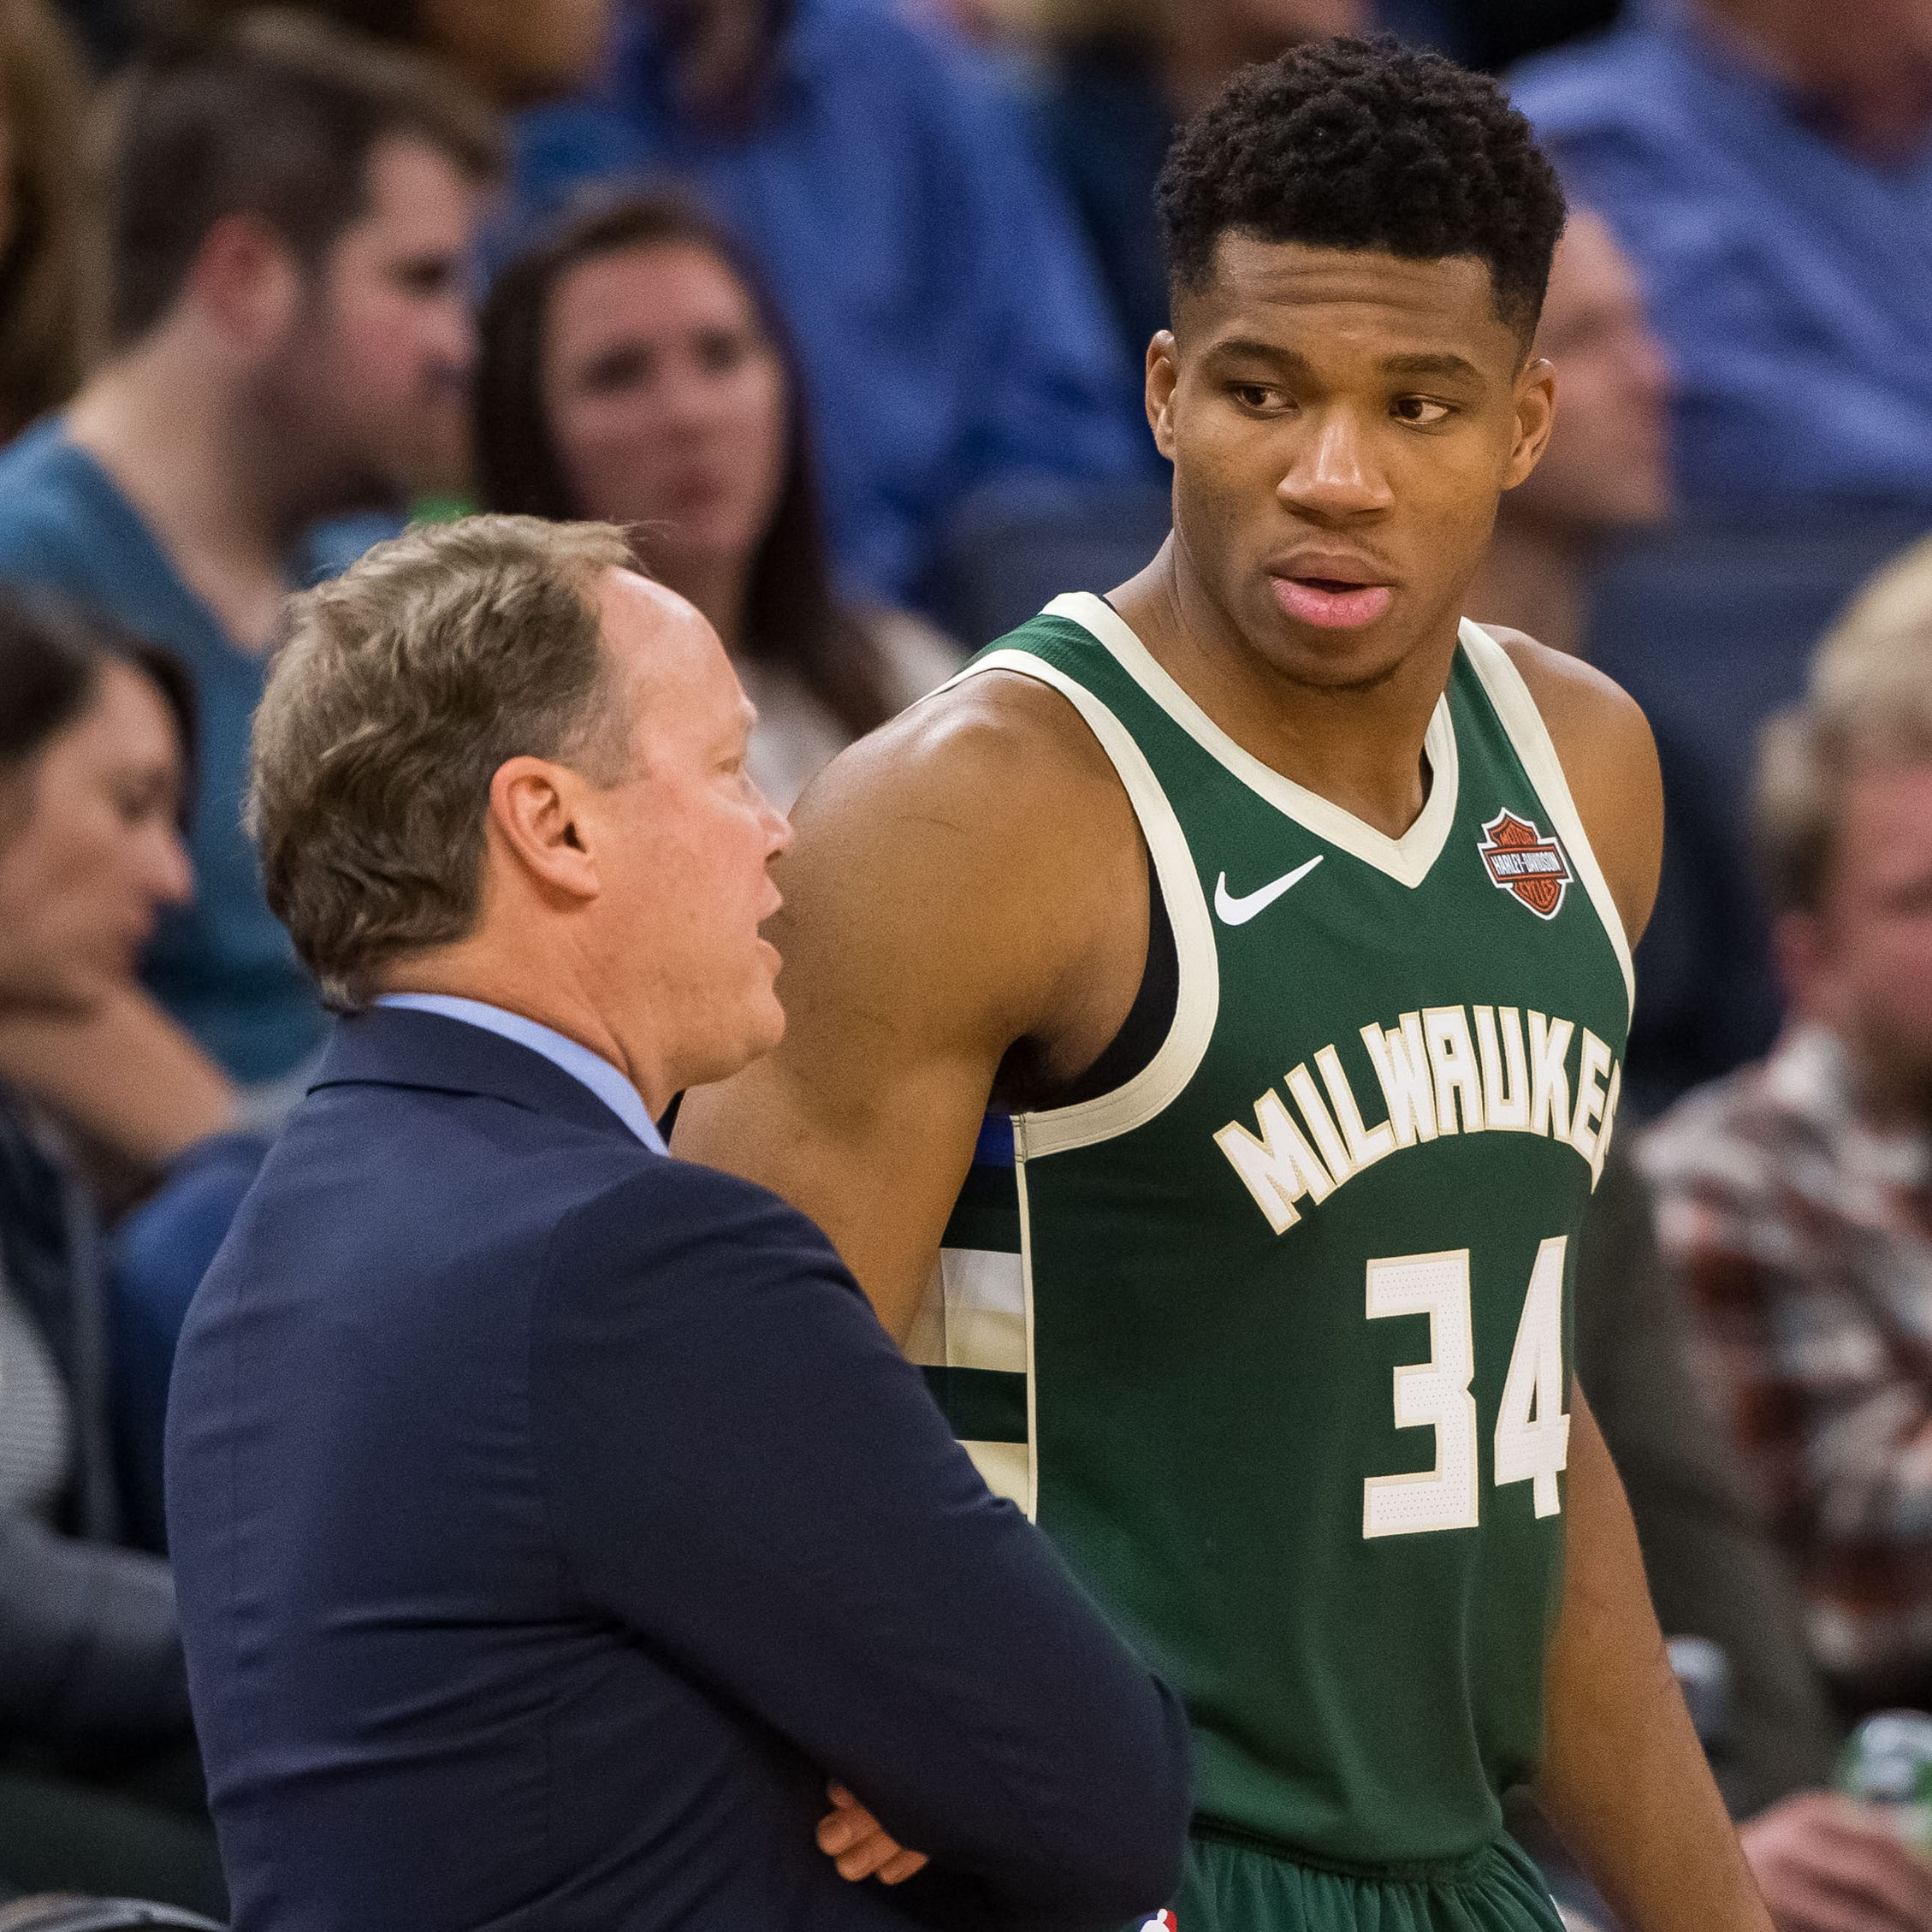 Giannis Antetokounmpo and Mike Budenholzer are worthy of top NBA individual awards